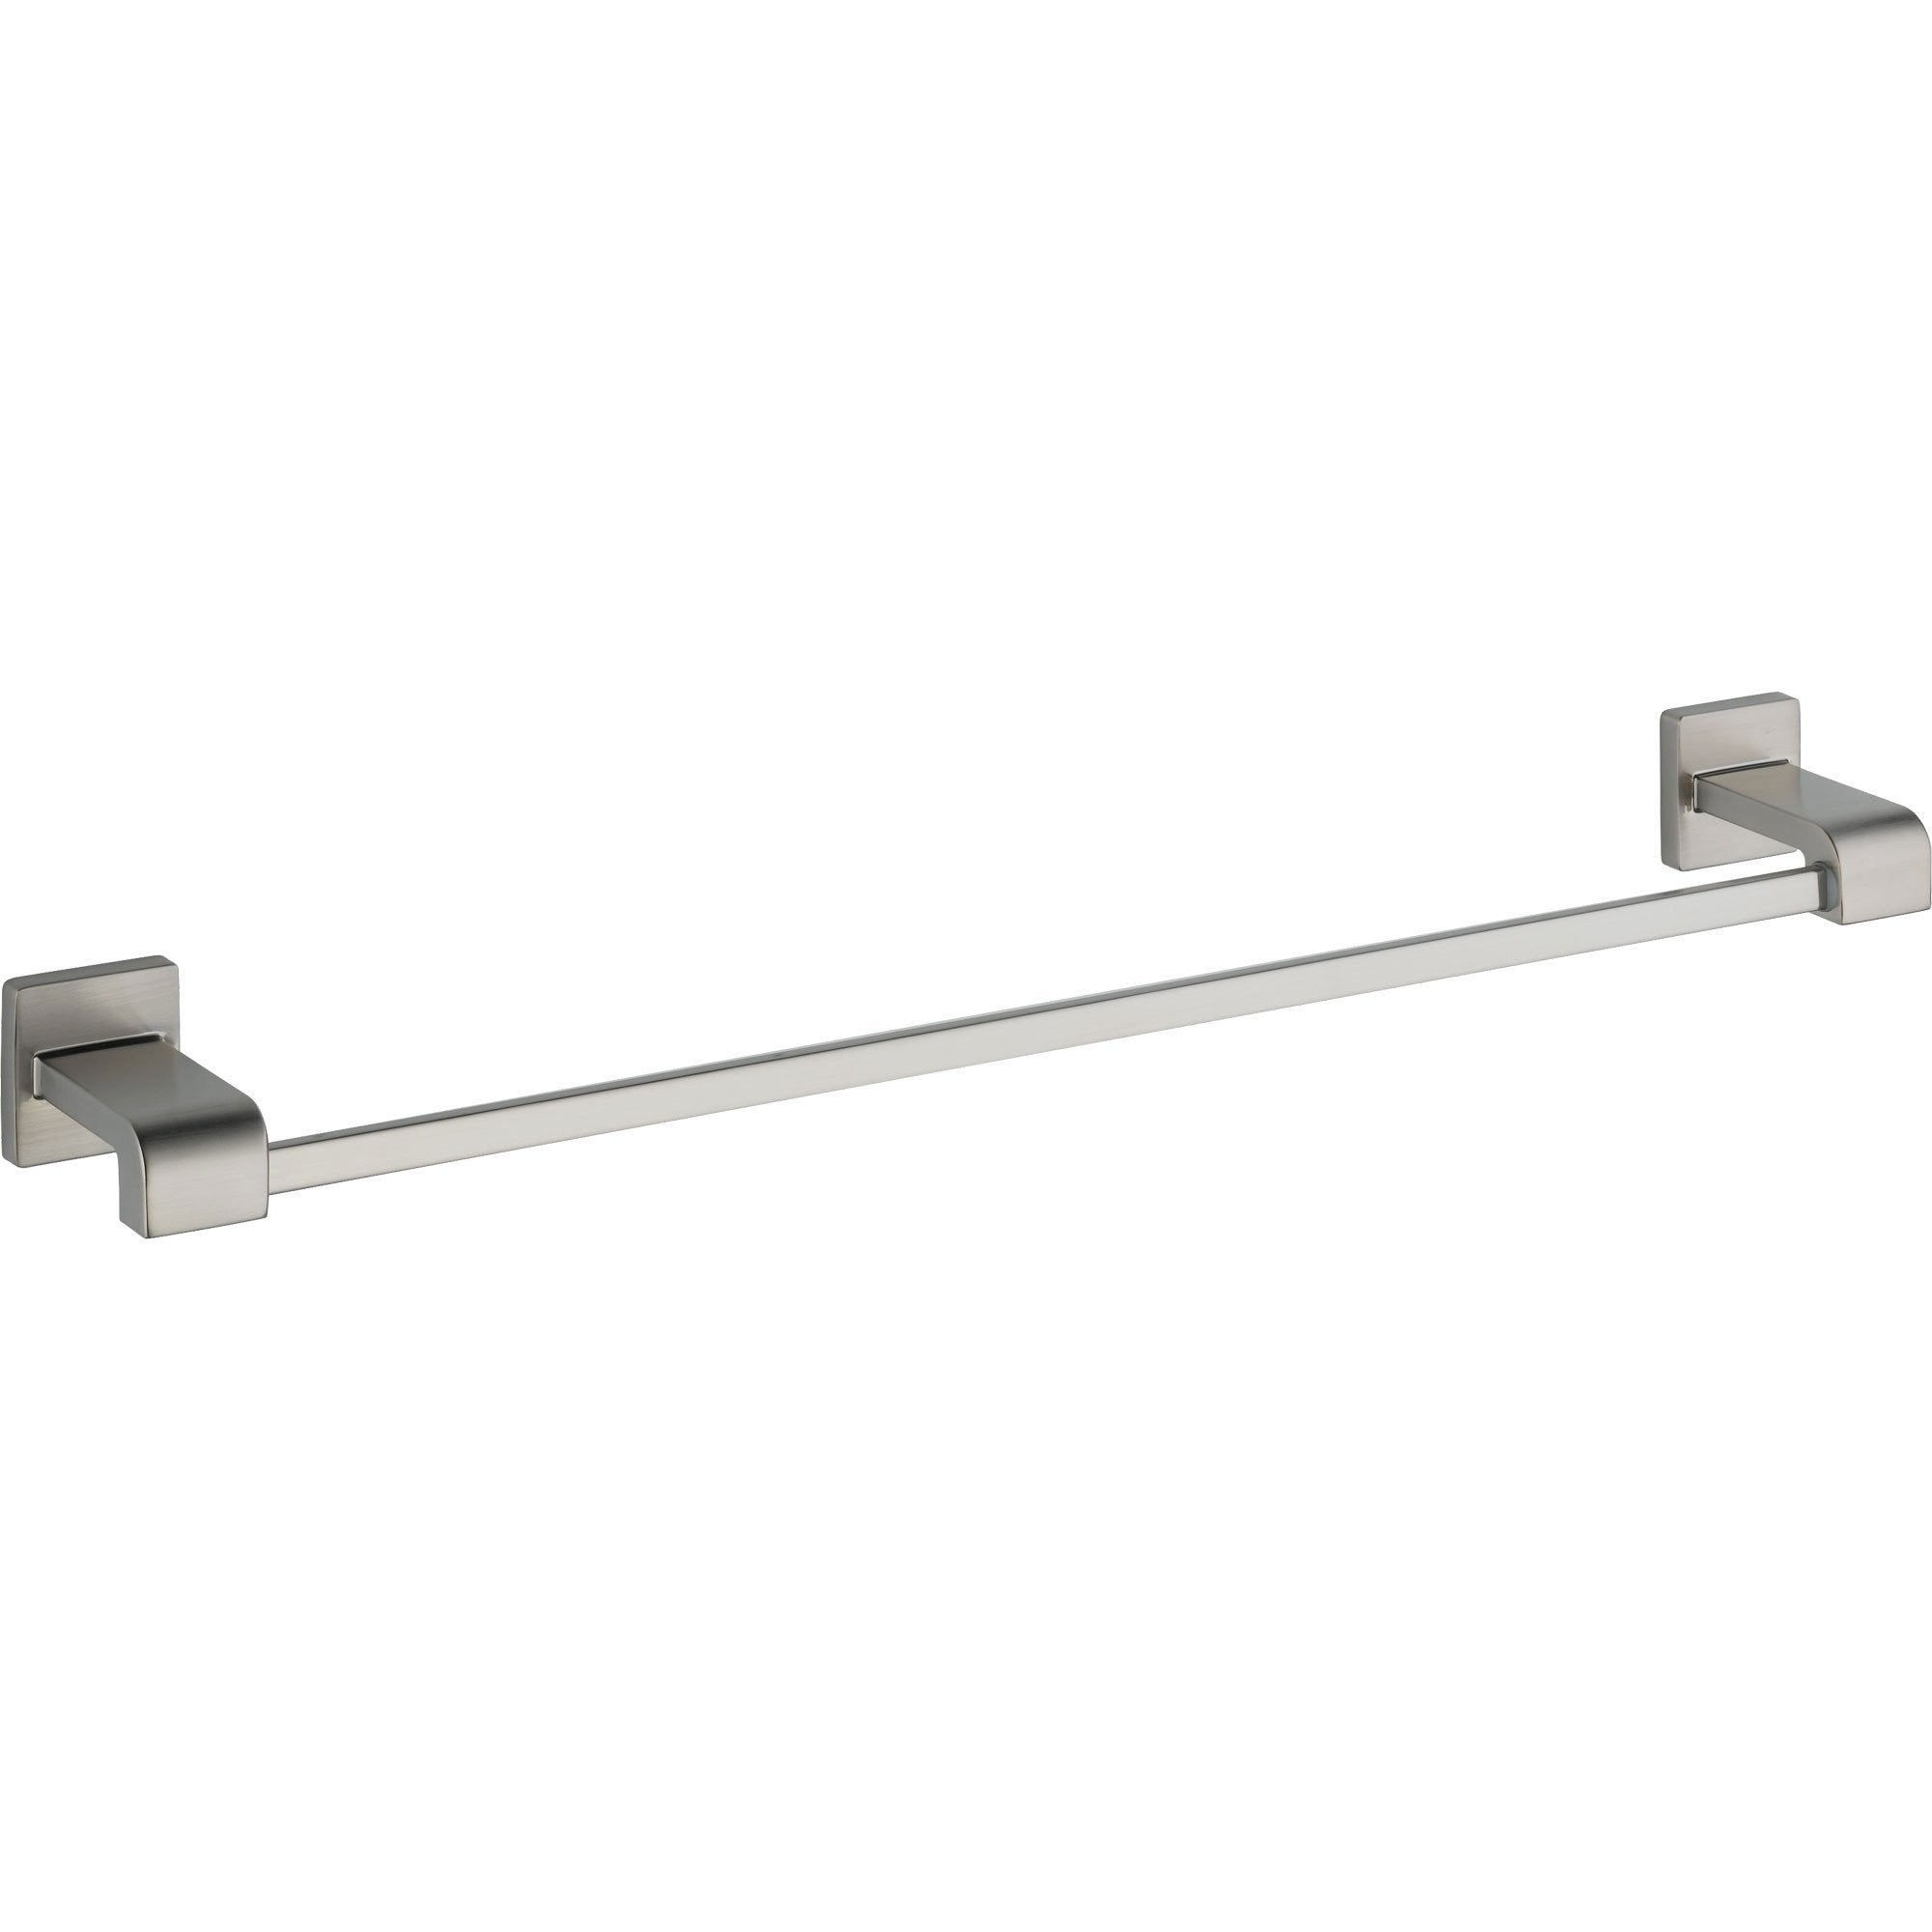 Delta Ara Modern 24 inch Stainless Steel Finish Single Towel Bar 353117